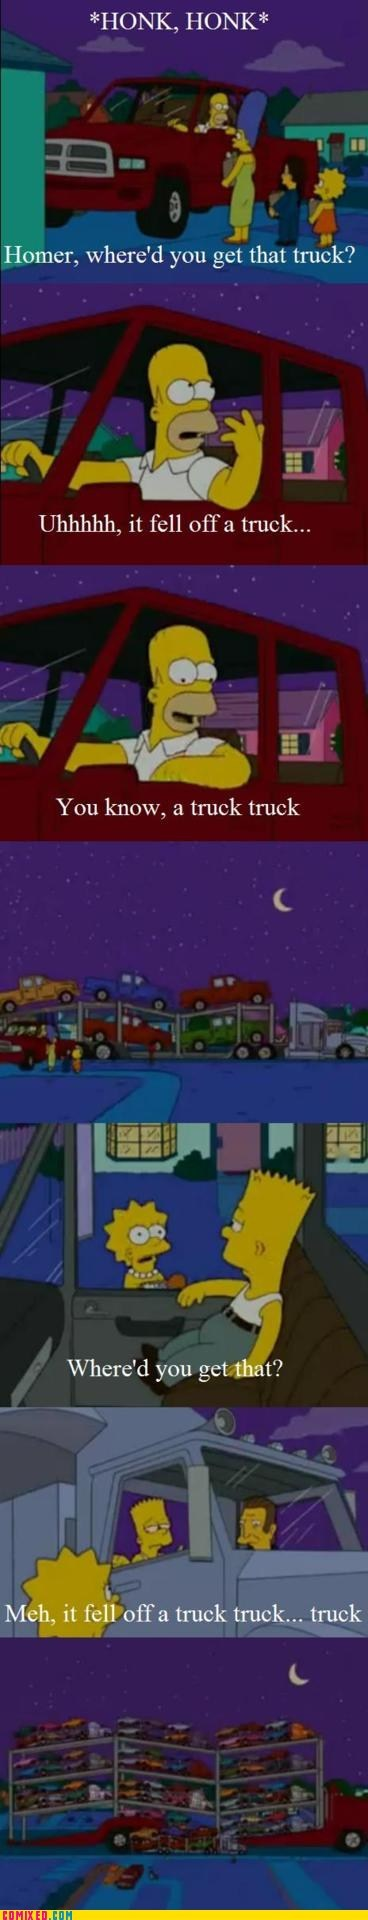 cartoons simpsons trucks TV yo dawg - 6202893568